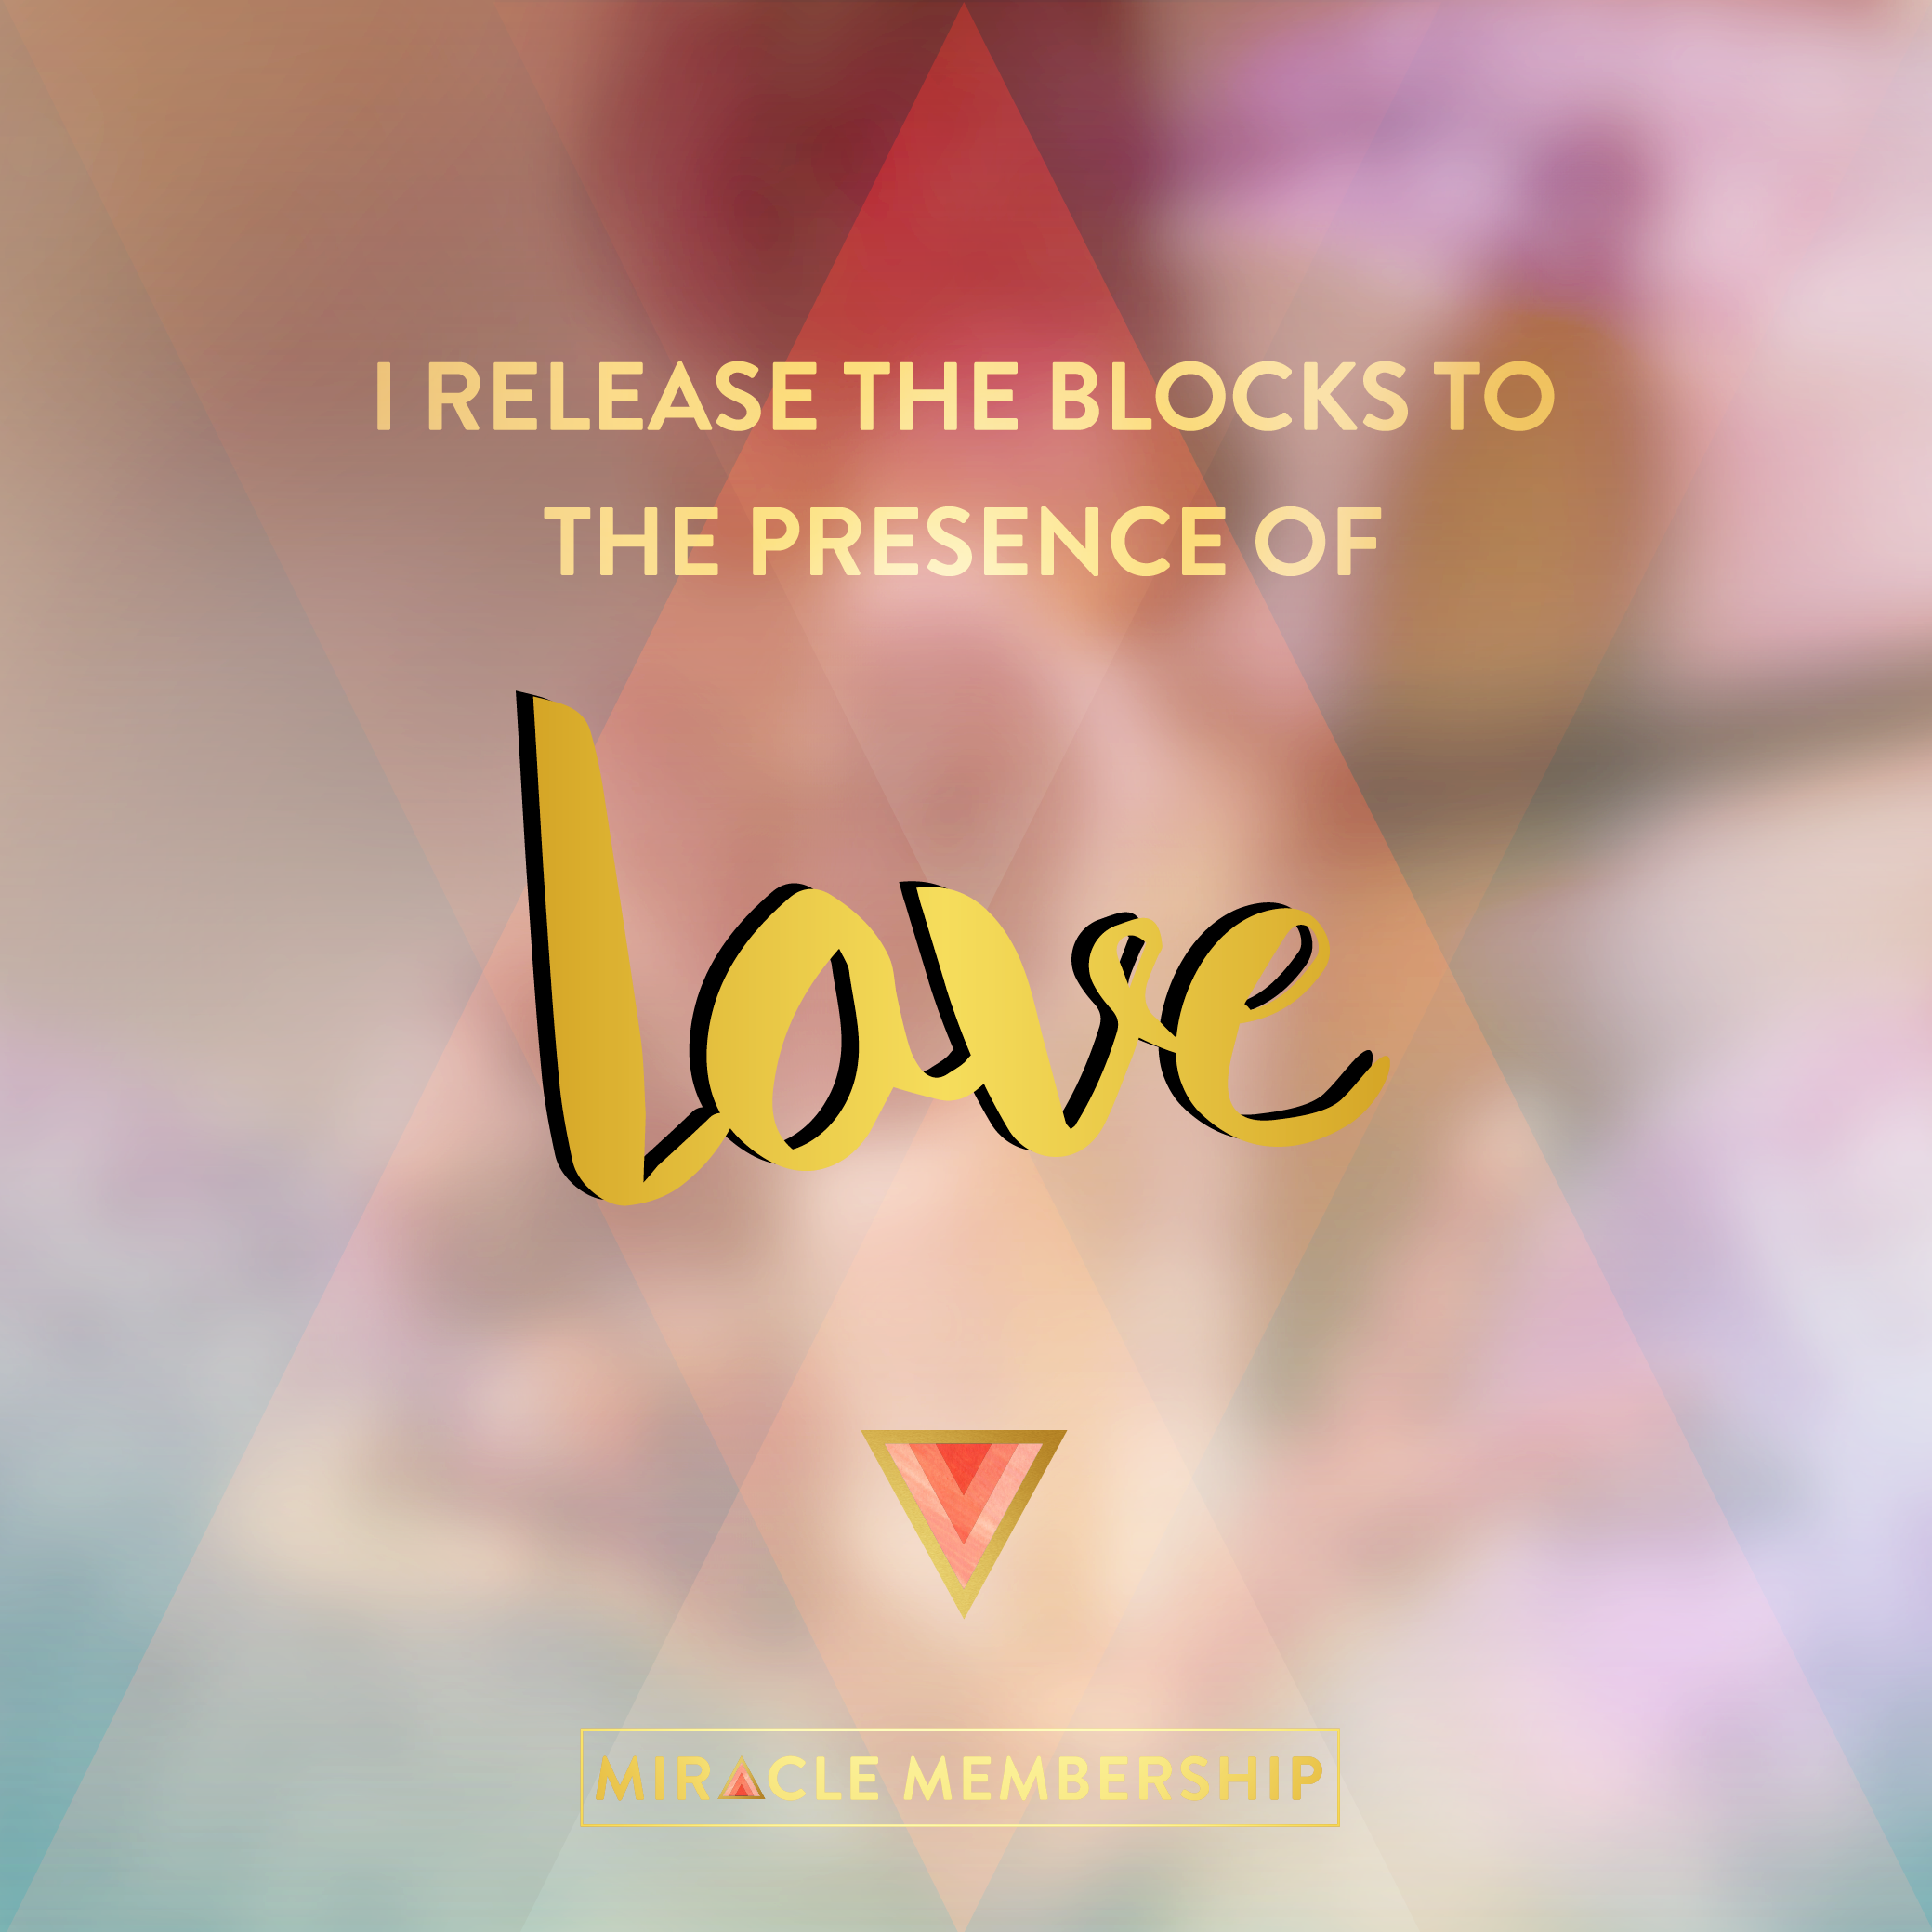 I release the blocks to the presence of love | Mantra from Gabby Bernstein's Miracle Membership